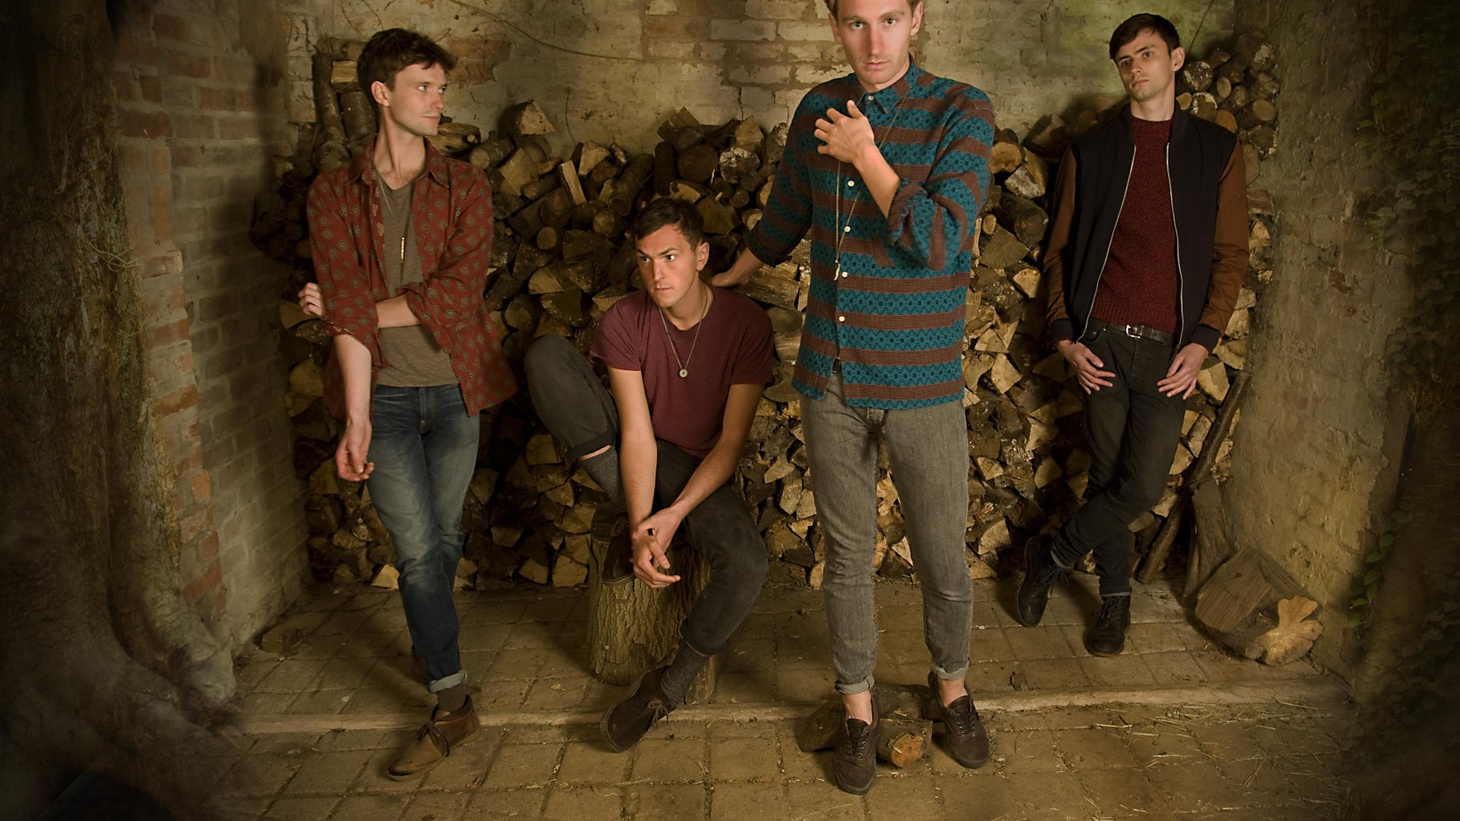 Glass Animals conjure sexy down-tempo grooves reminiscent of early Portishead.